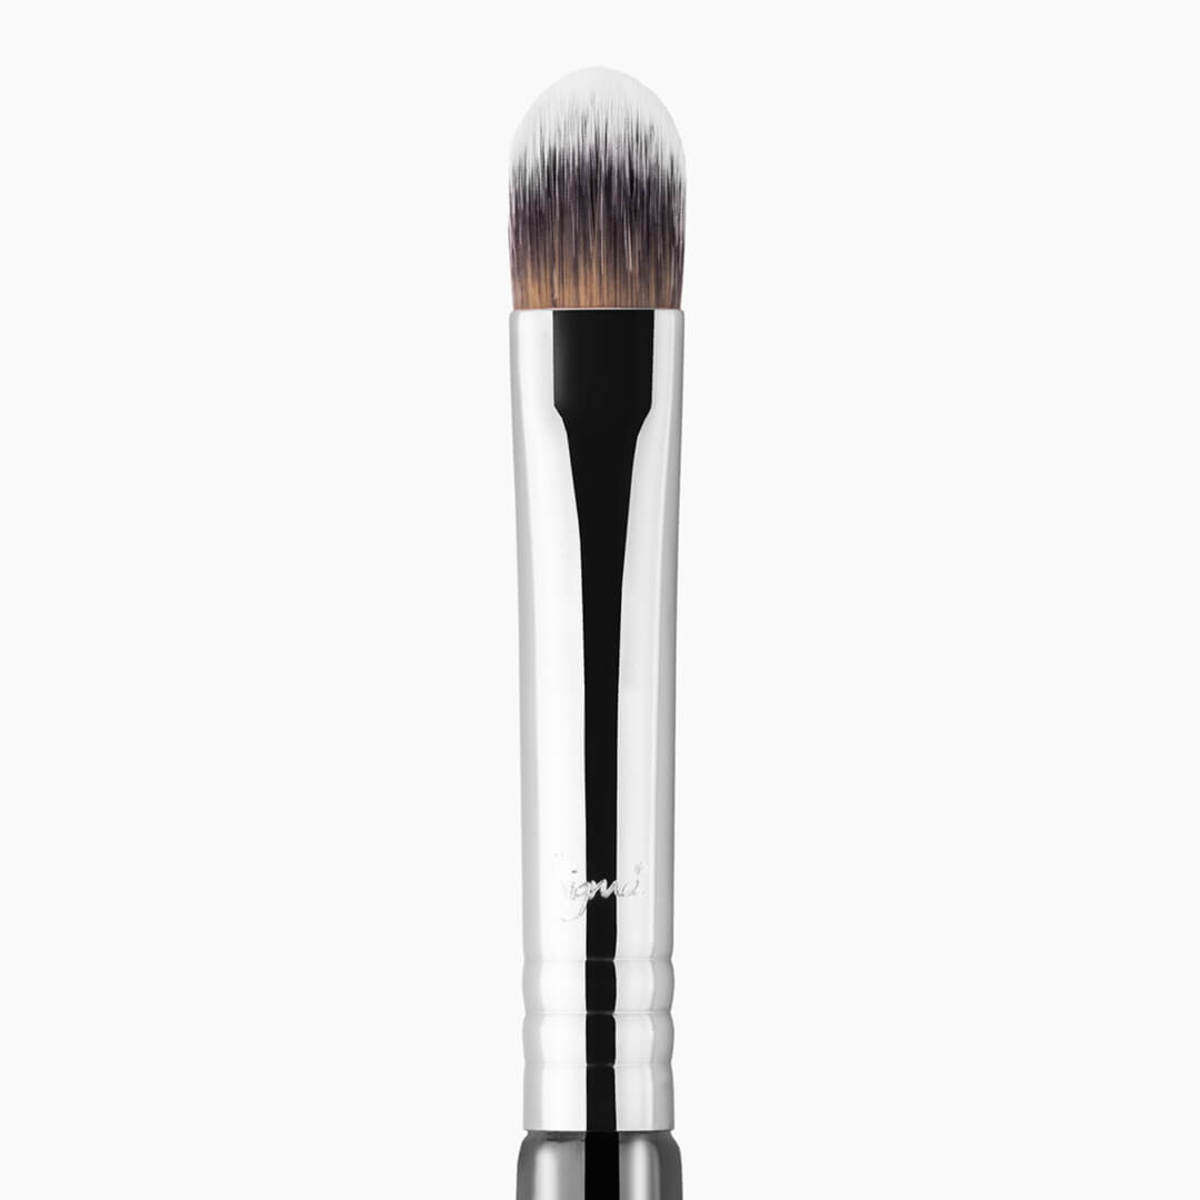 Make sure to scrape the excess off the brush by sliding it along the opening of the tube as you take it out.